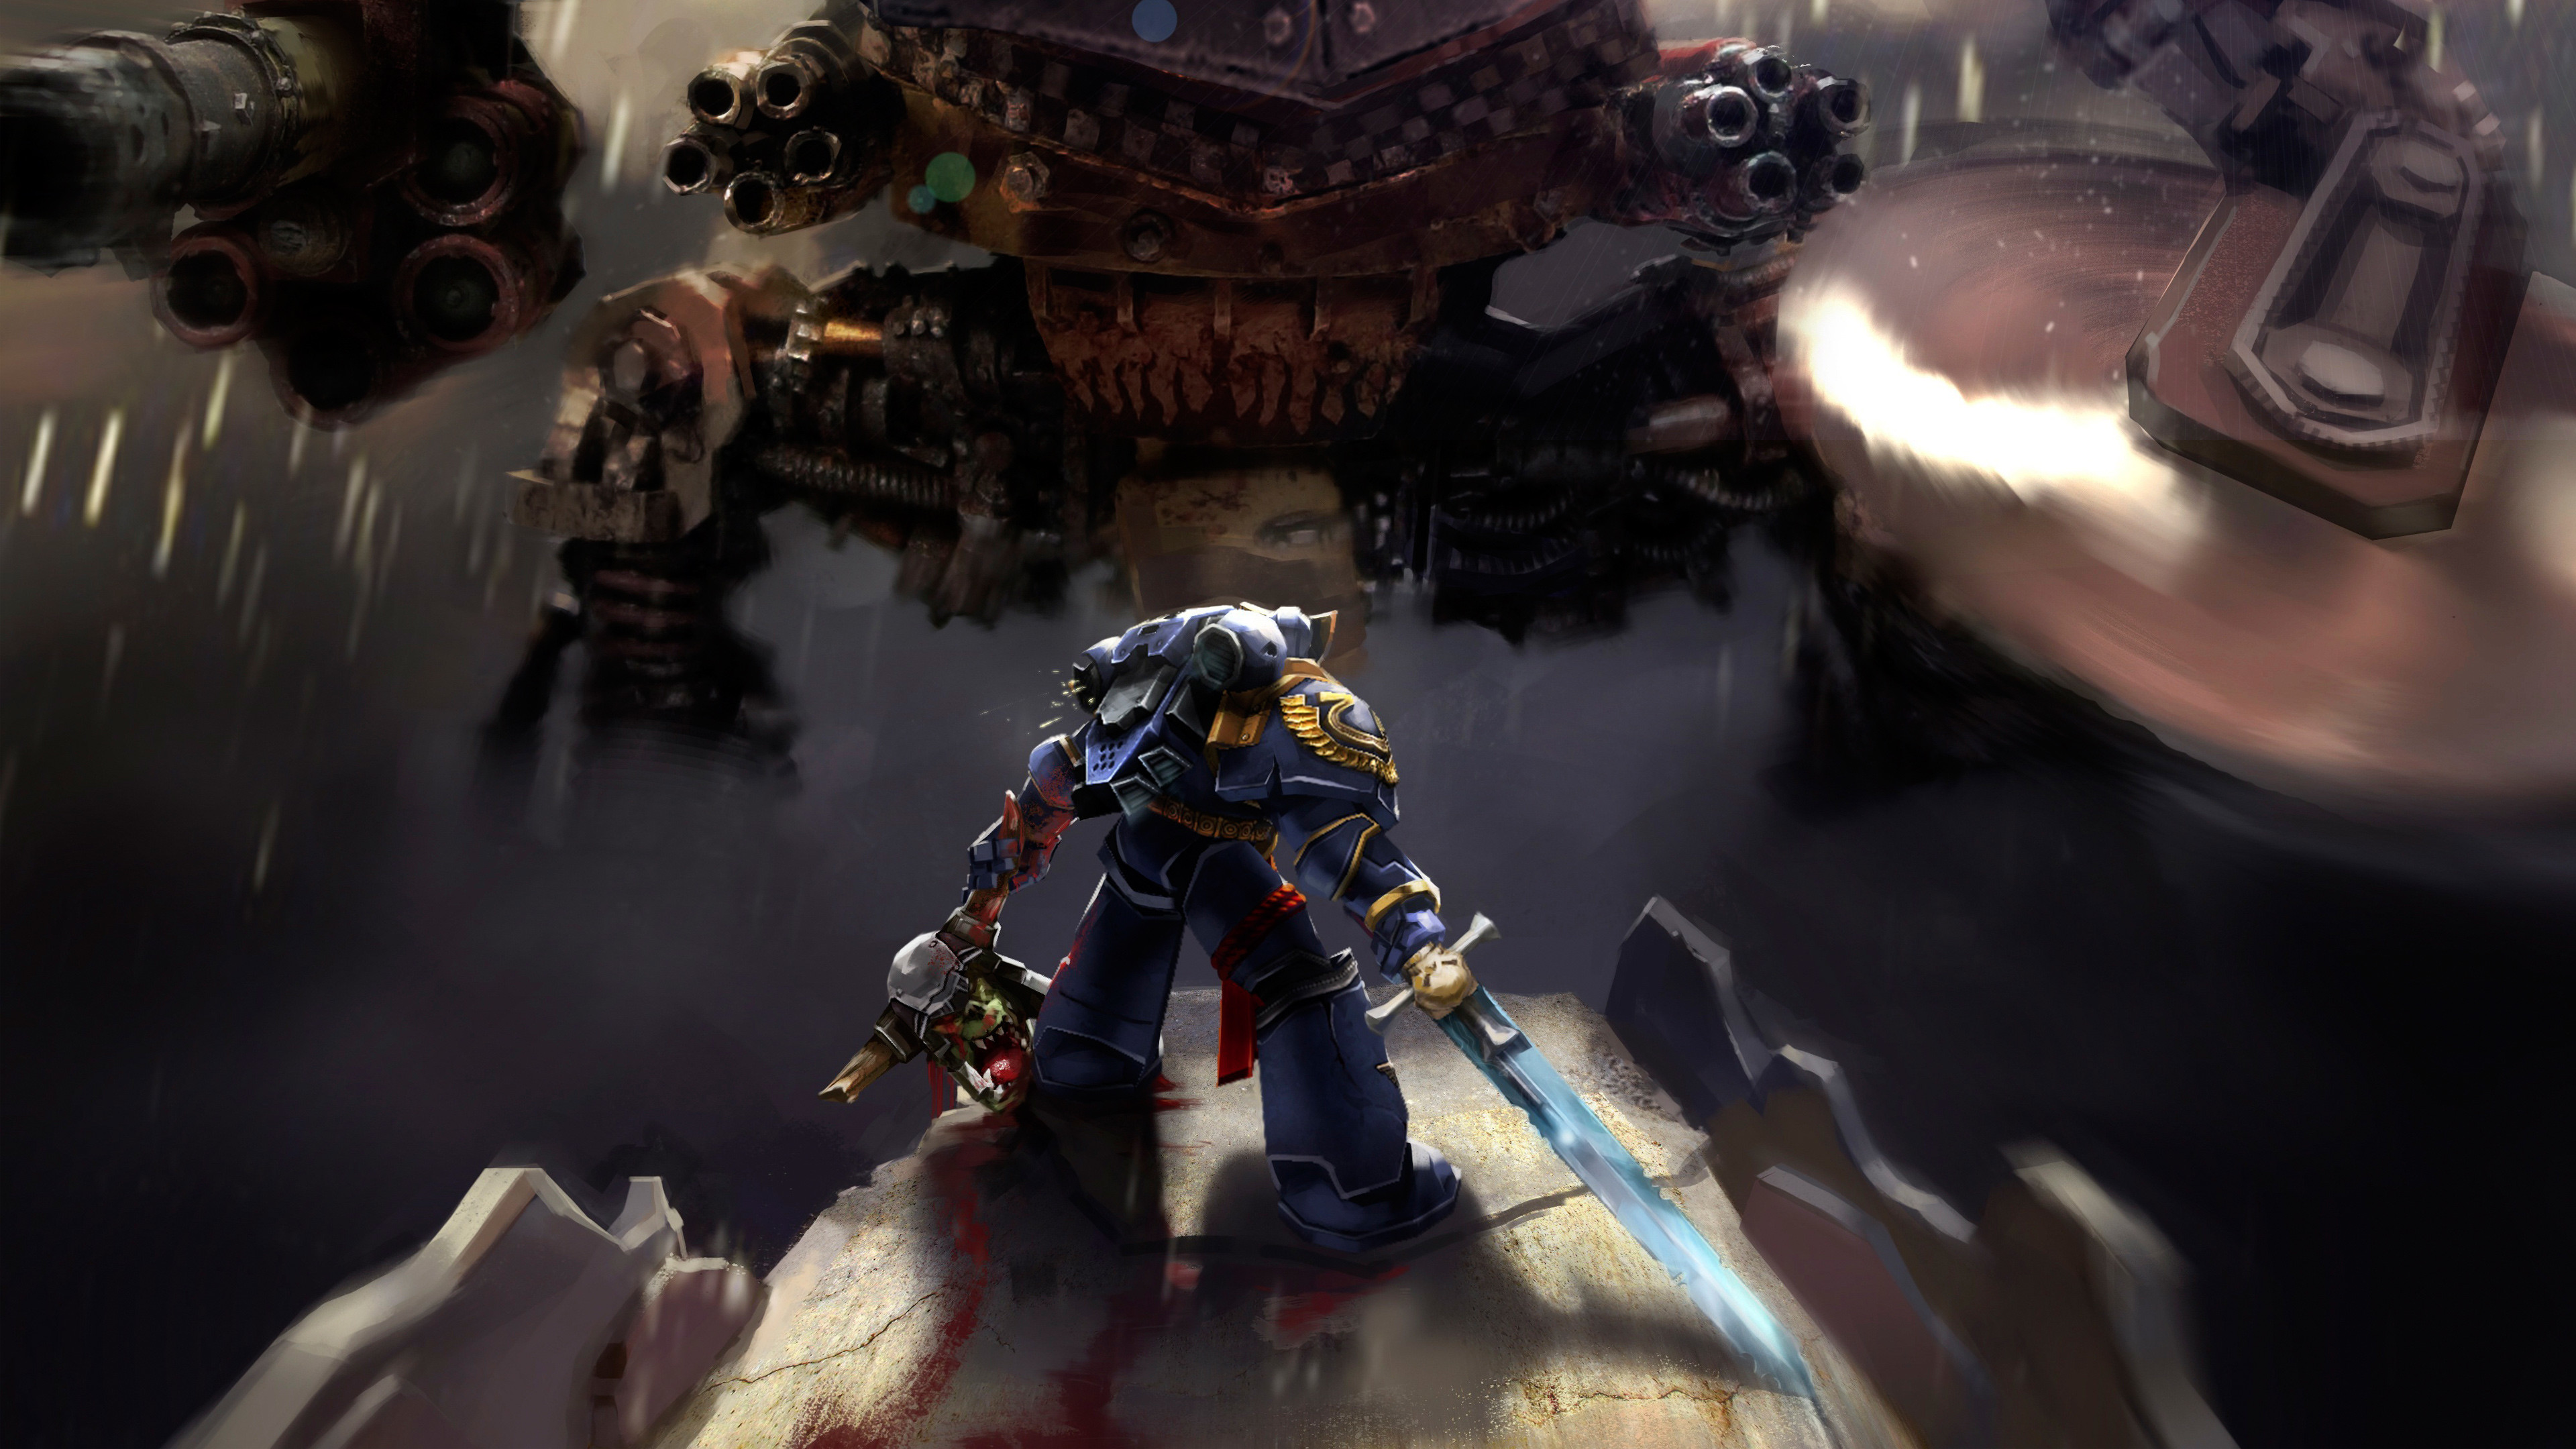 3840x2160 40k space marines hd wallpapers -#main